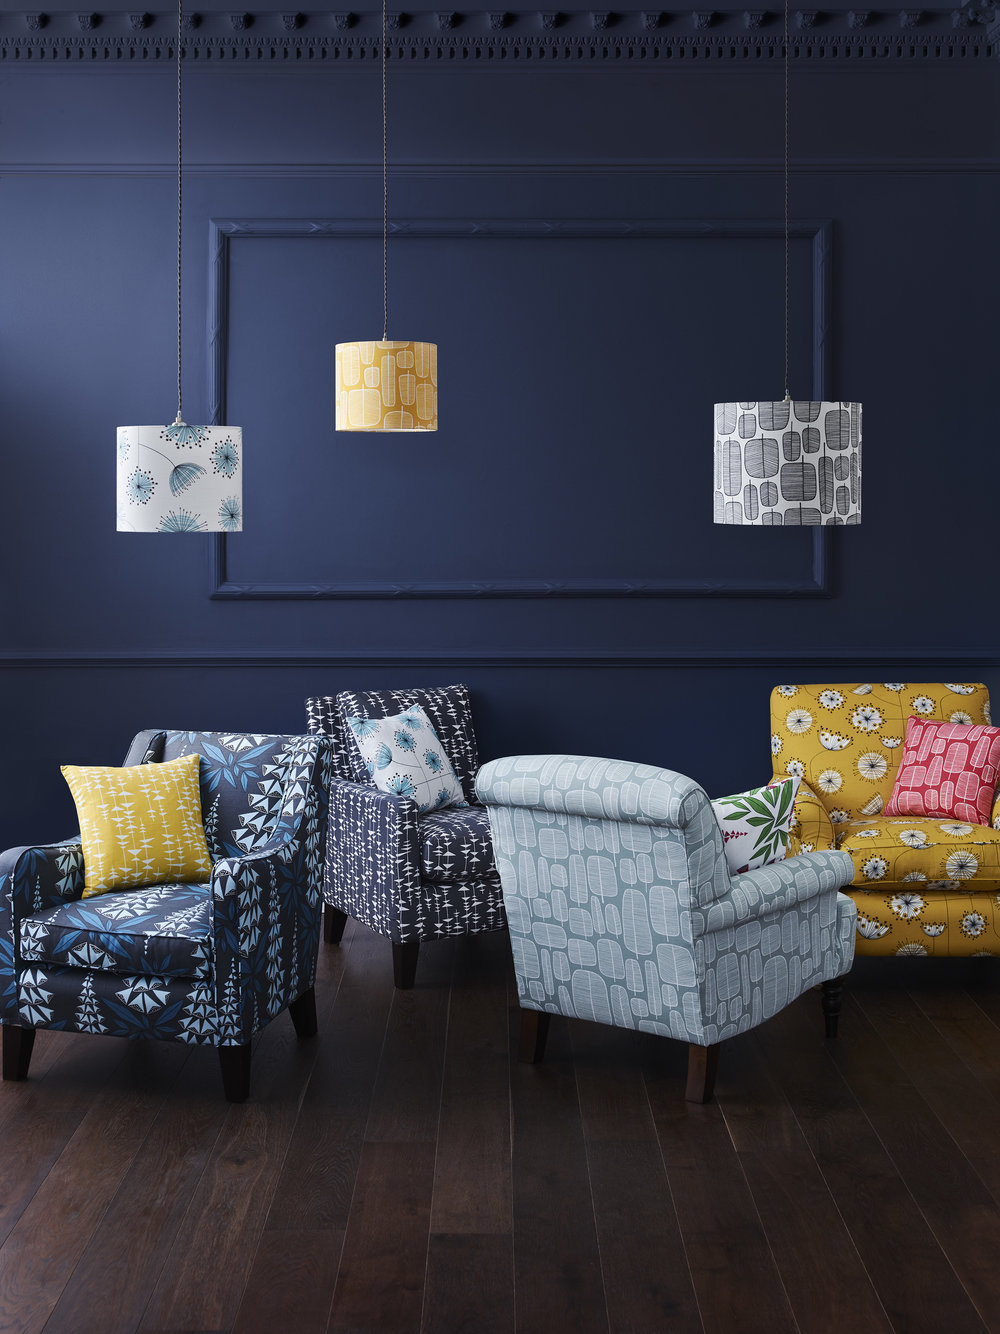 Alpine chair in Foxglove Boleyn Fabric £1129, Alfie Chair in Ditto Liquorice Fabric £1049, Ambleside Chair in Garden City Putty Rouge Fabric £1299, Halstead Chair in Dandelion Mobile Sunflower Yellow and White Fabric £889.